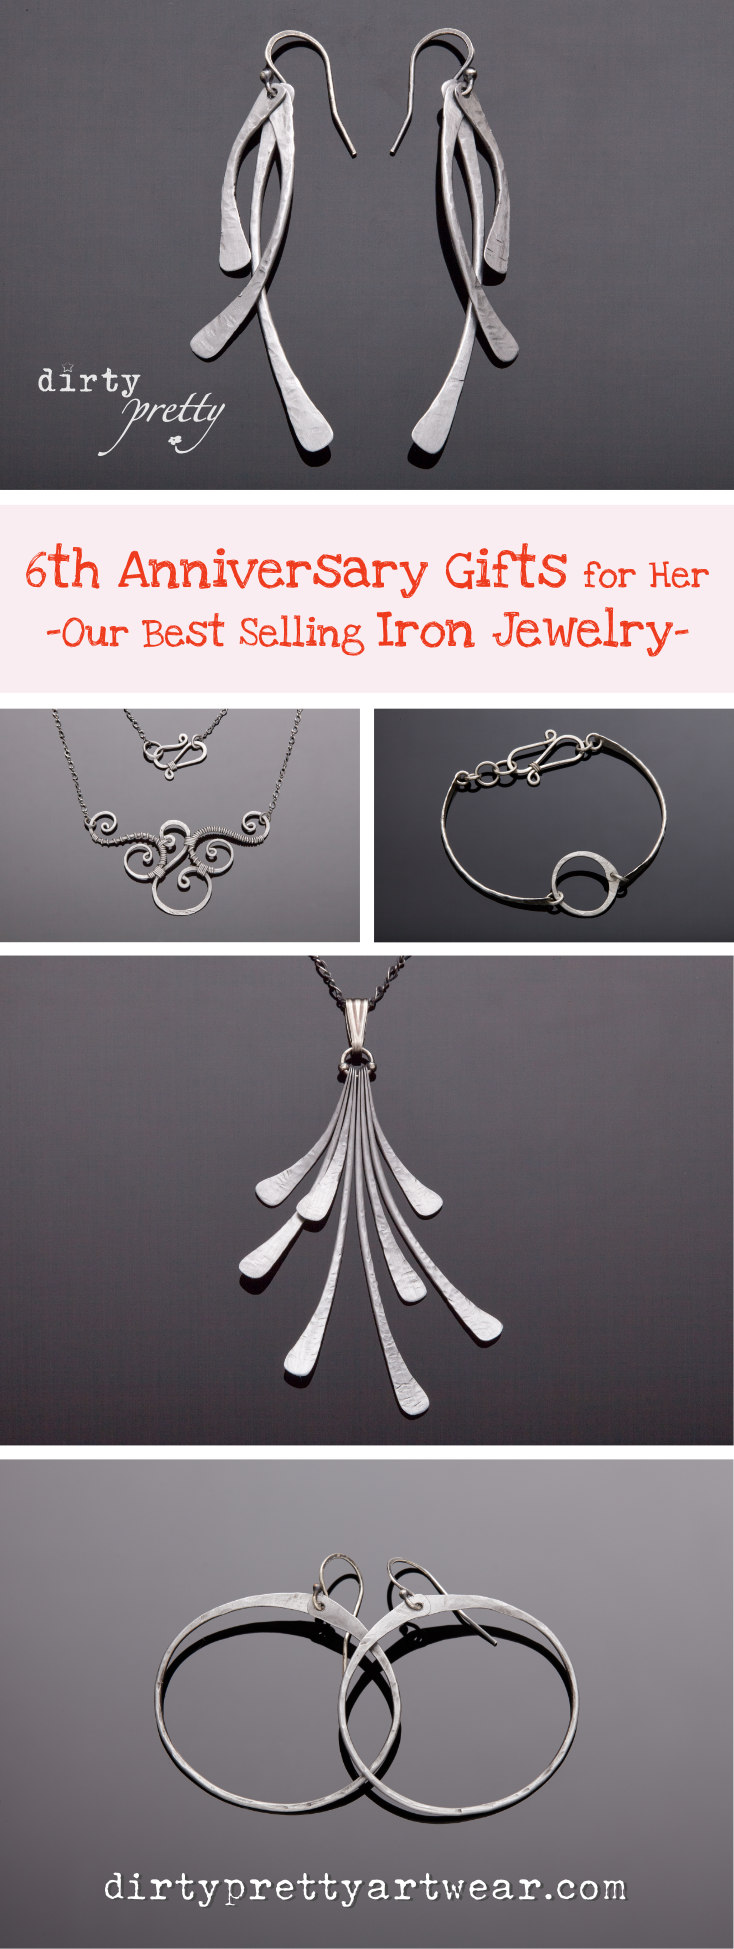 6th Anniversary Gift Our Best Selling Iron Jewelry Dirtypretty Artwear